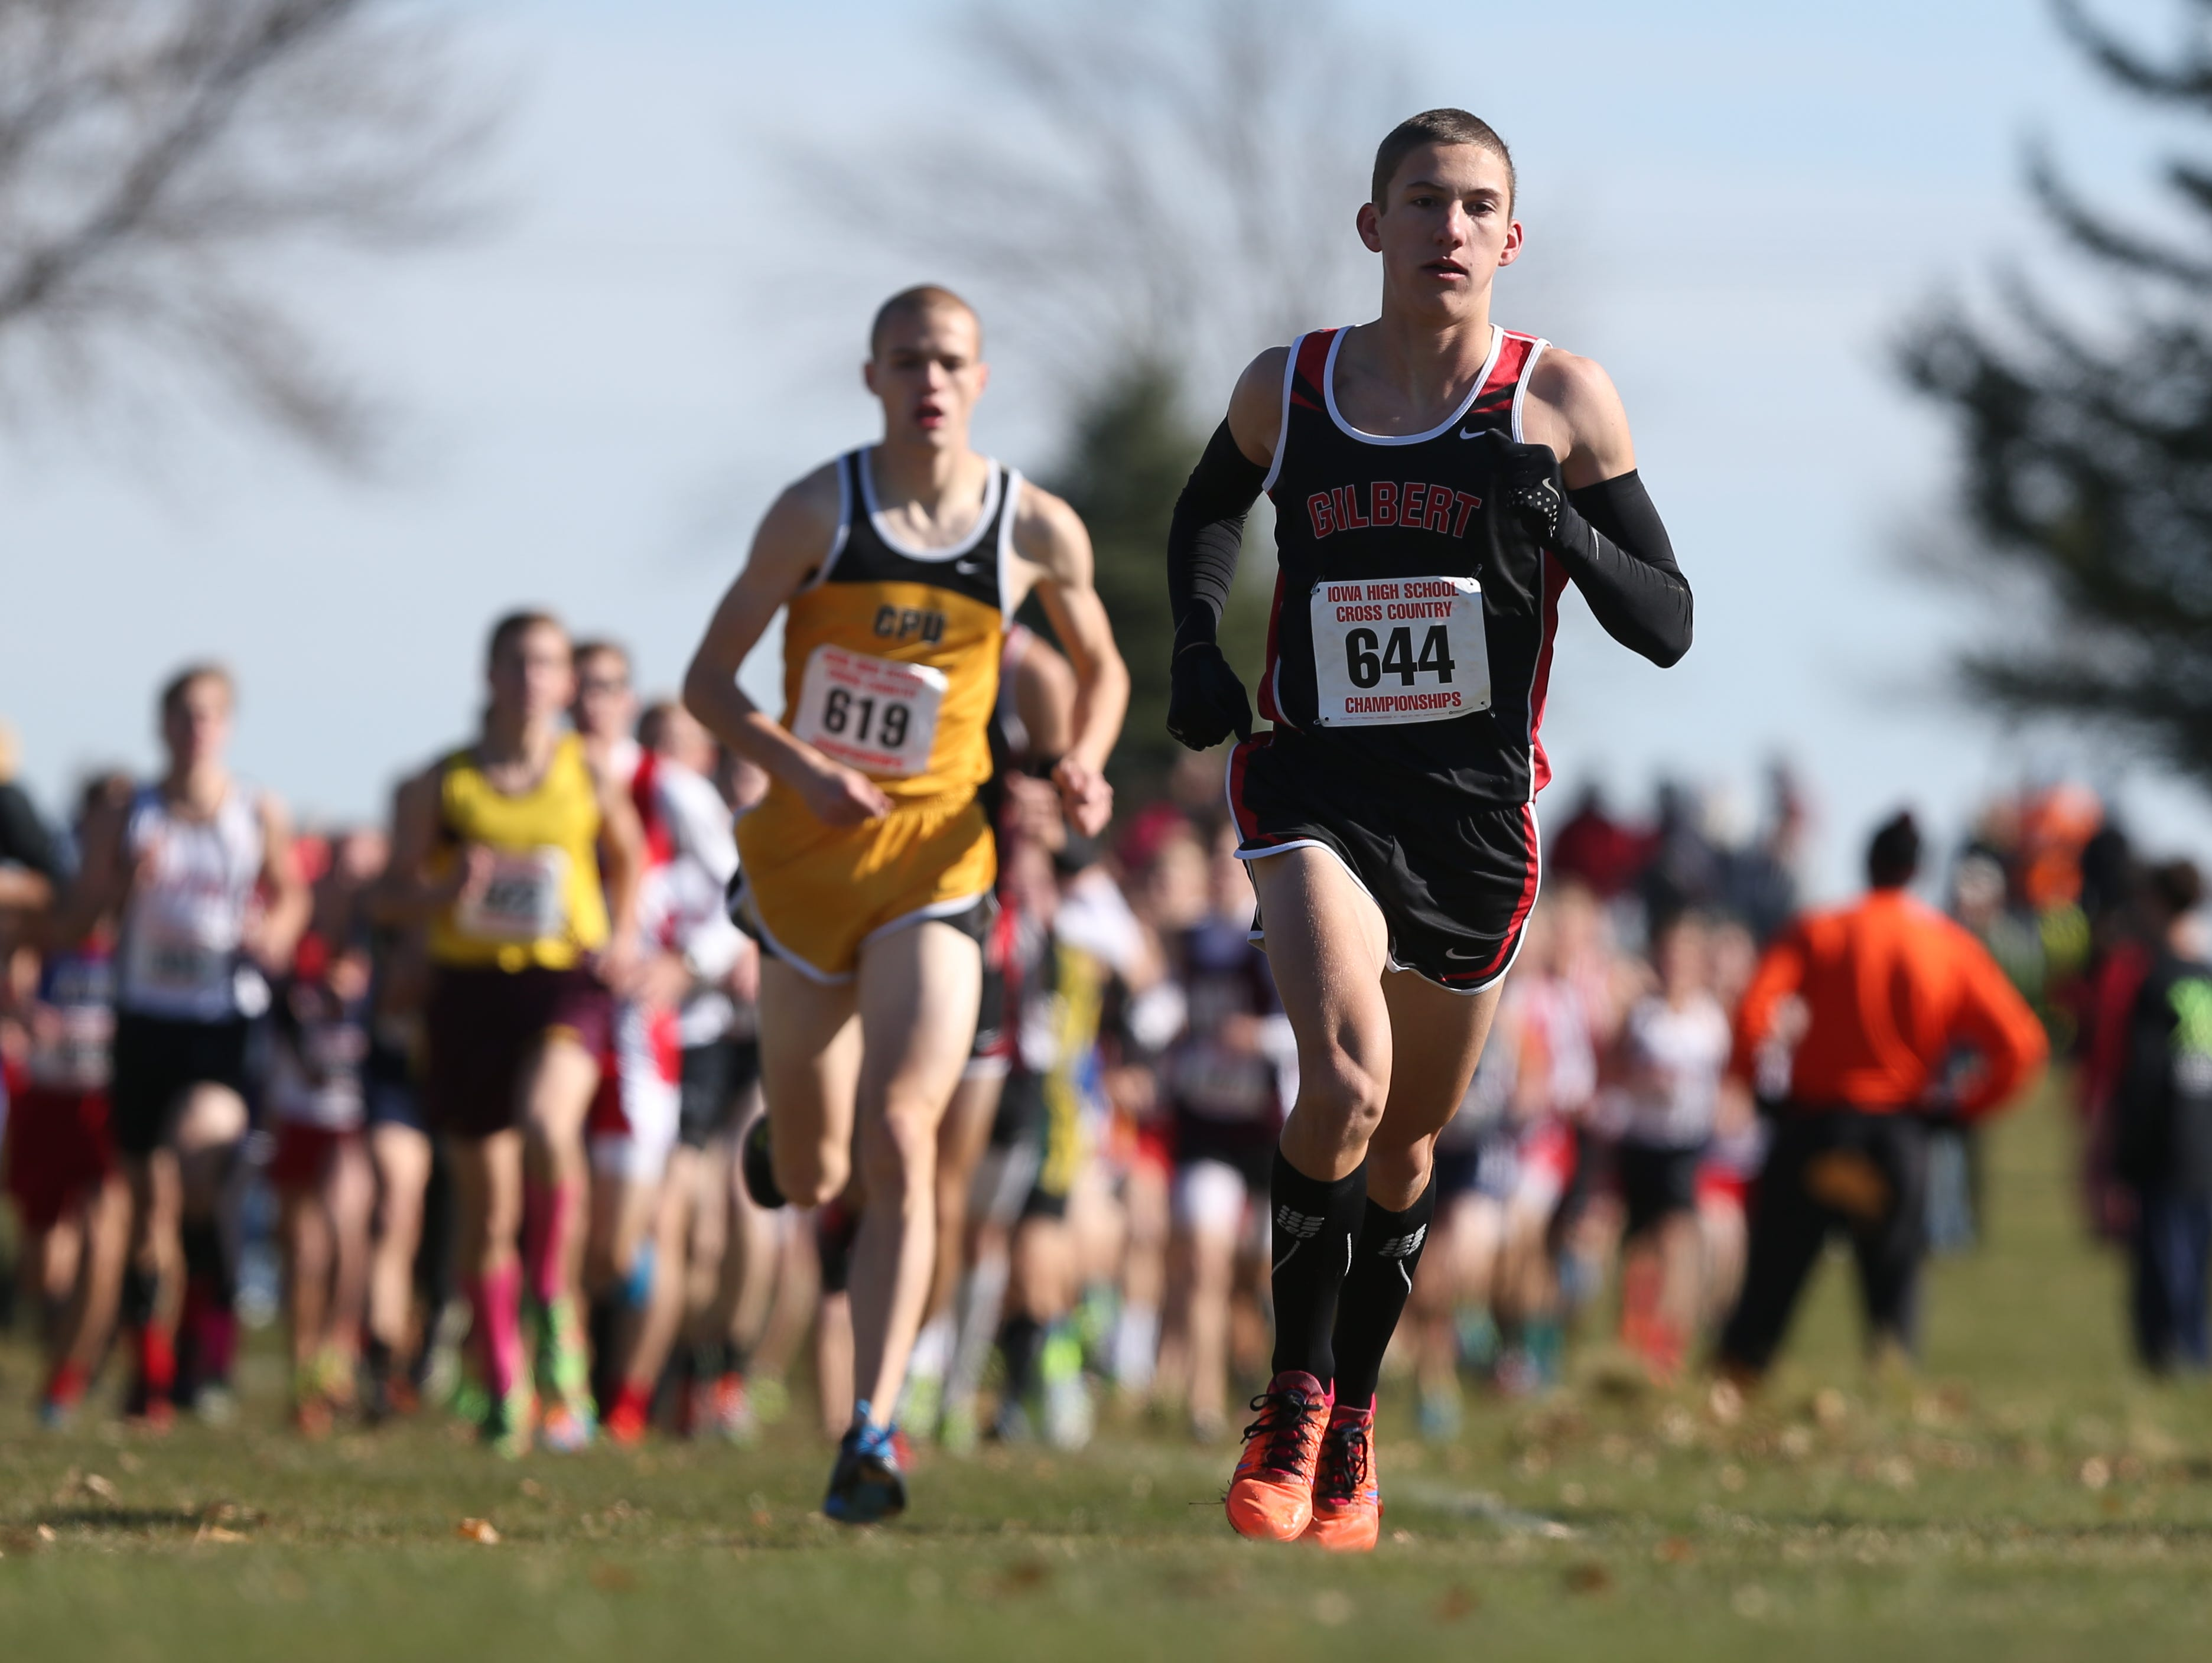 Thomas Pollard of Gilbert leads a pack of runners during the Iowa High School state cross country meet on Saturday, Nov. 1, 2014, at Kennedy Park in Fort Dodge, Iowa.